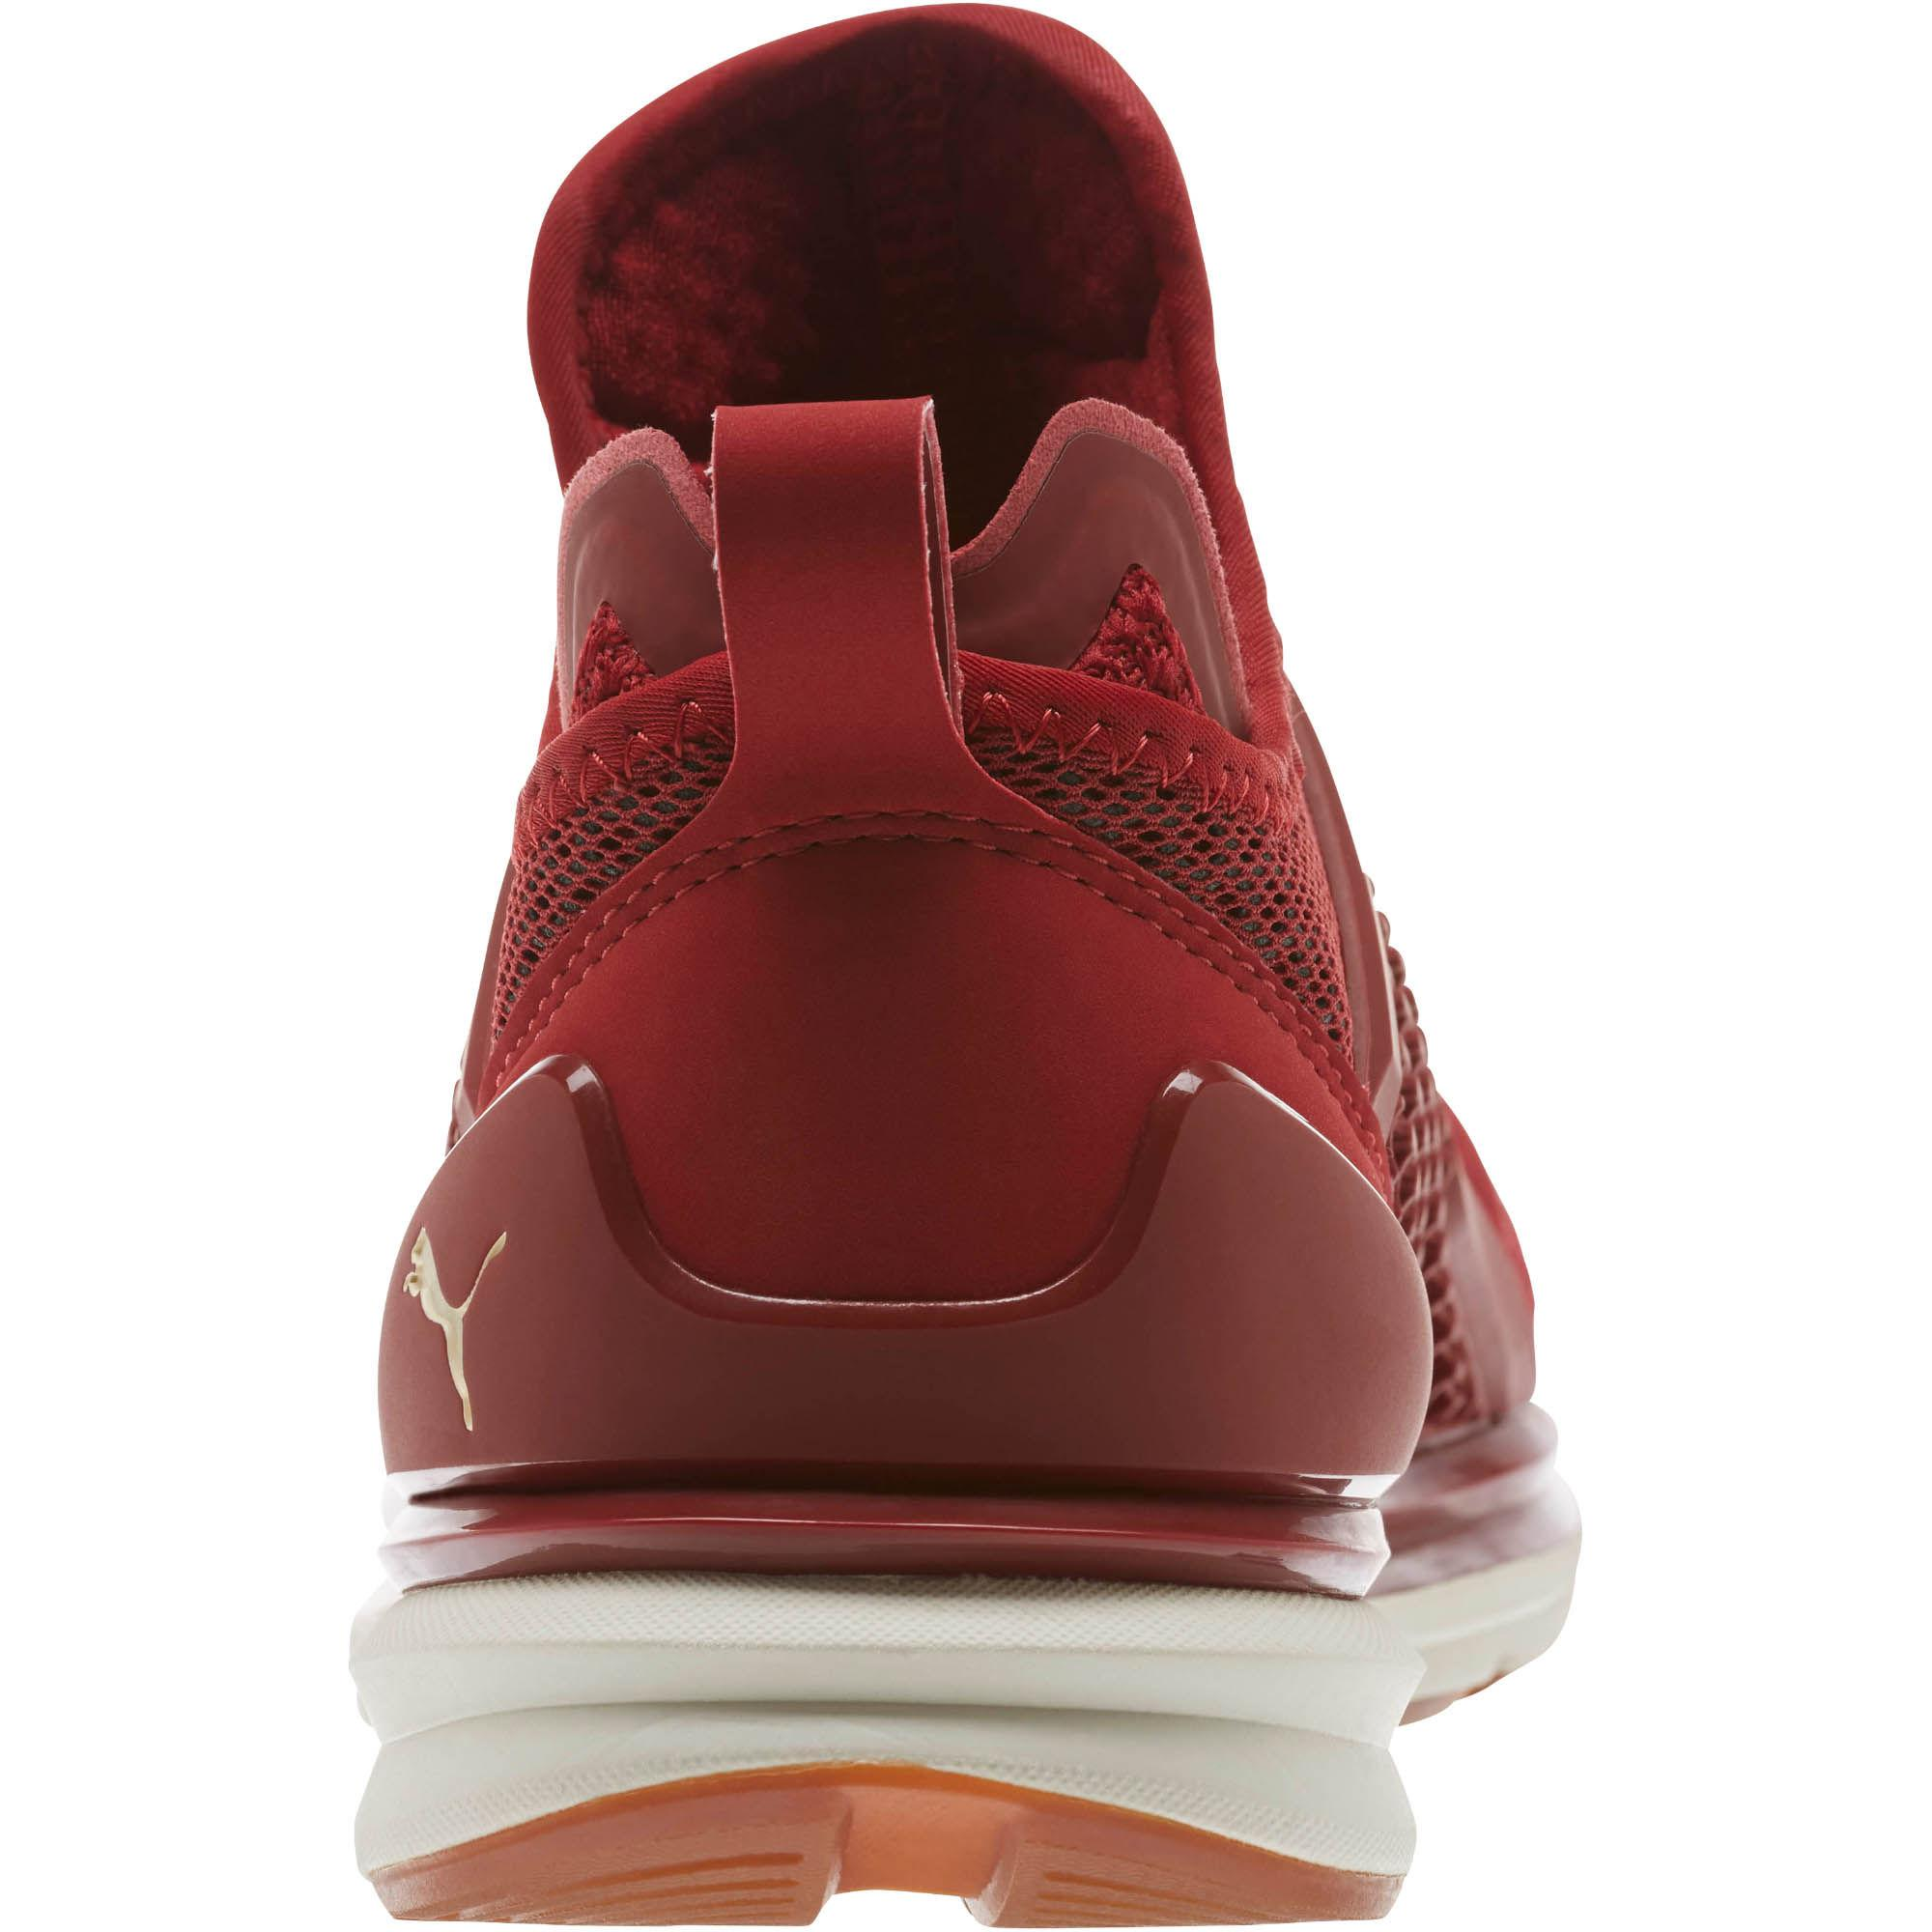 c26848c61a4d Lyst - PUMA Ignite Limitless Weave Women s Running Shoes in Red